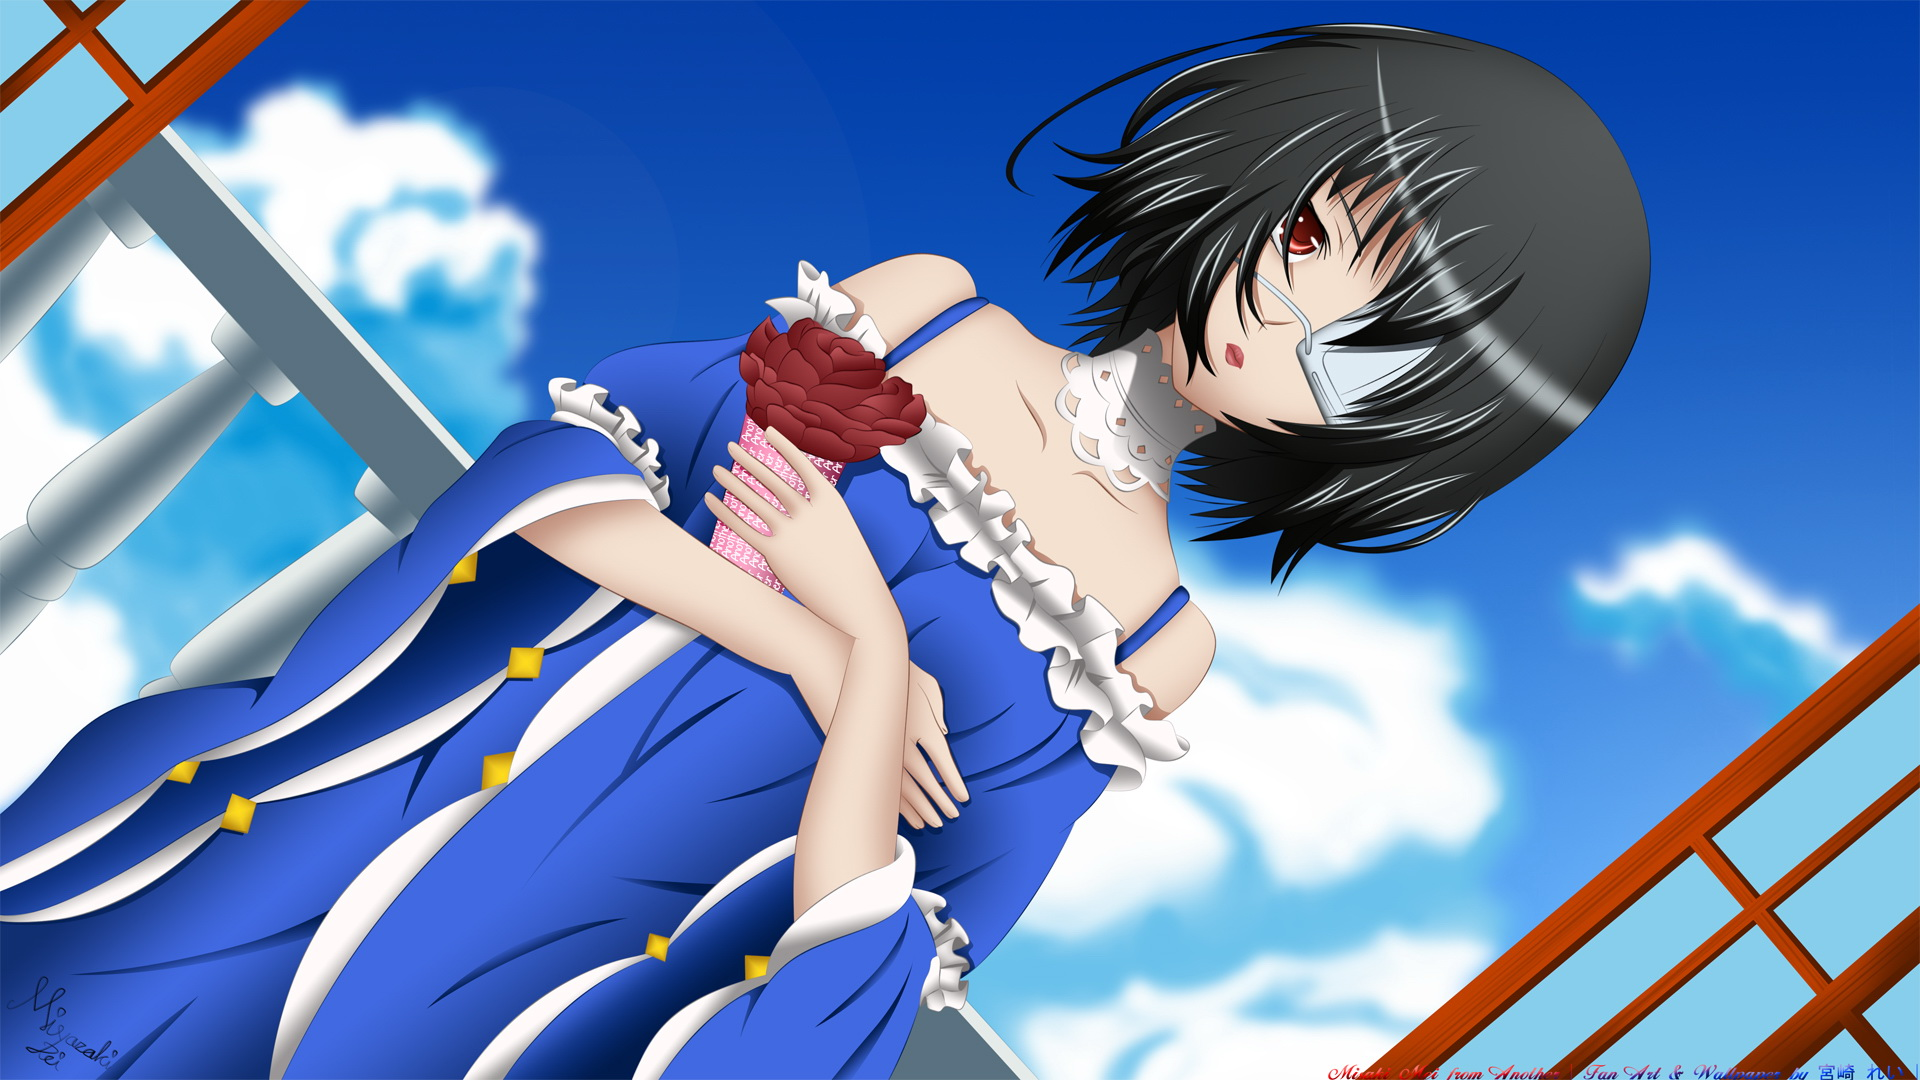 Another hd wallpaper background image 1920x1080 id - Another anime hd wallpaper ...